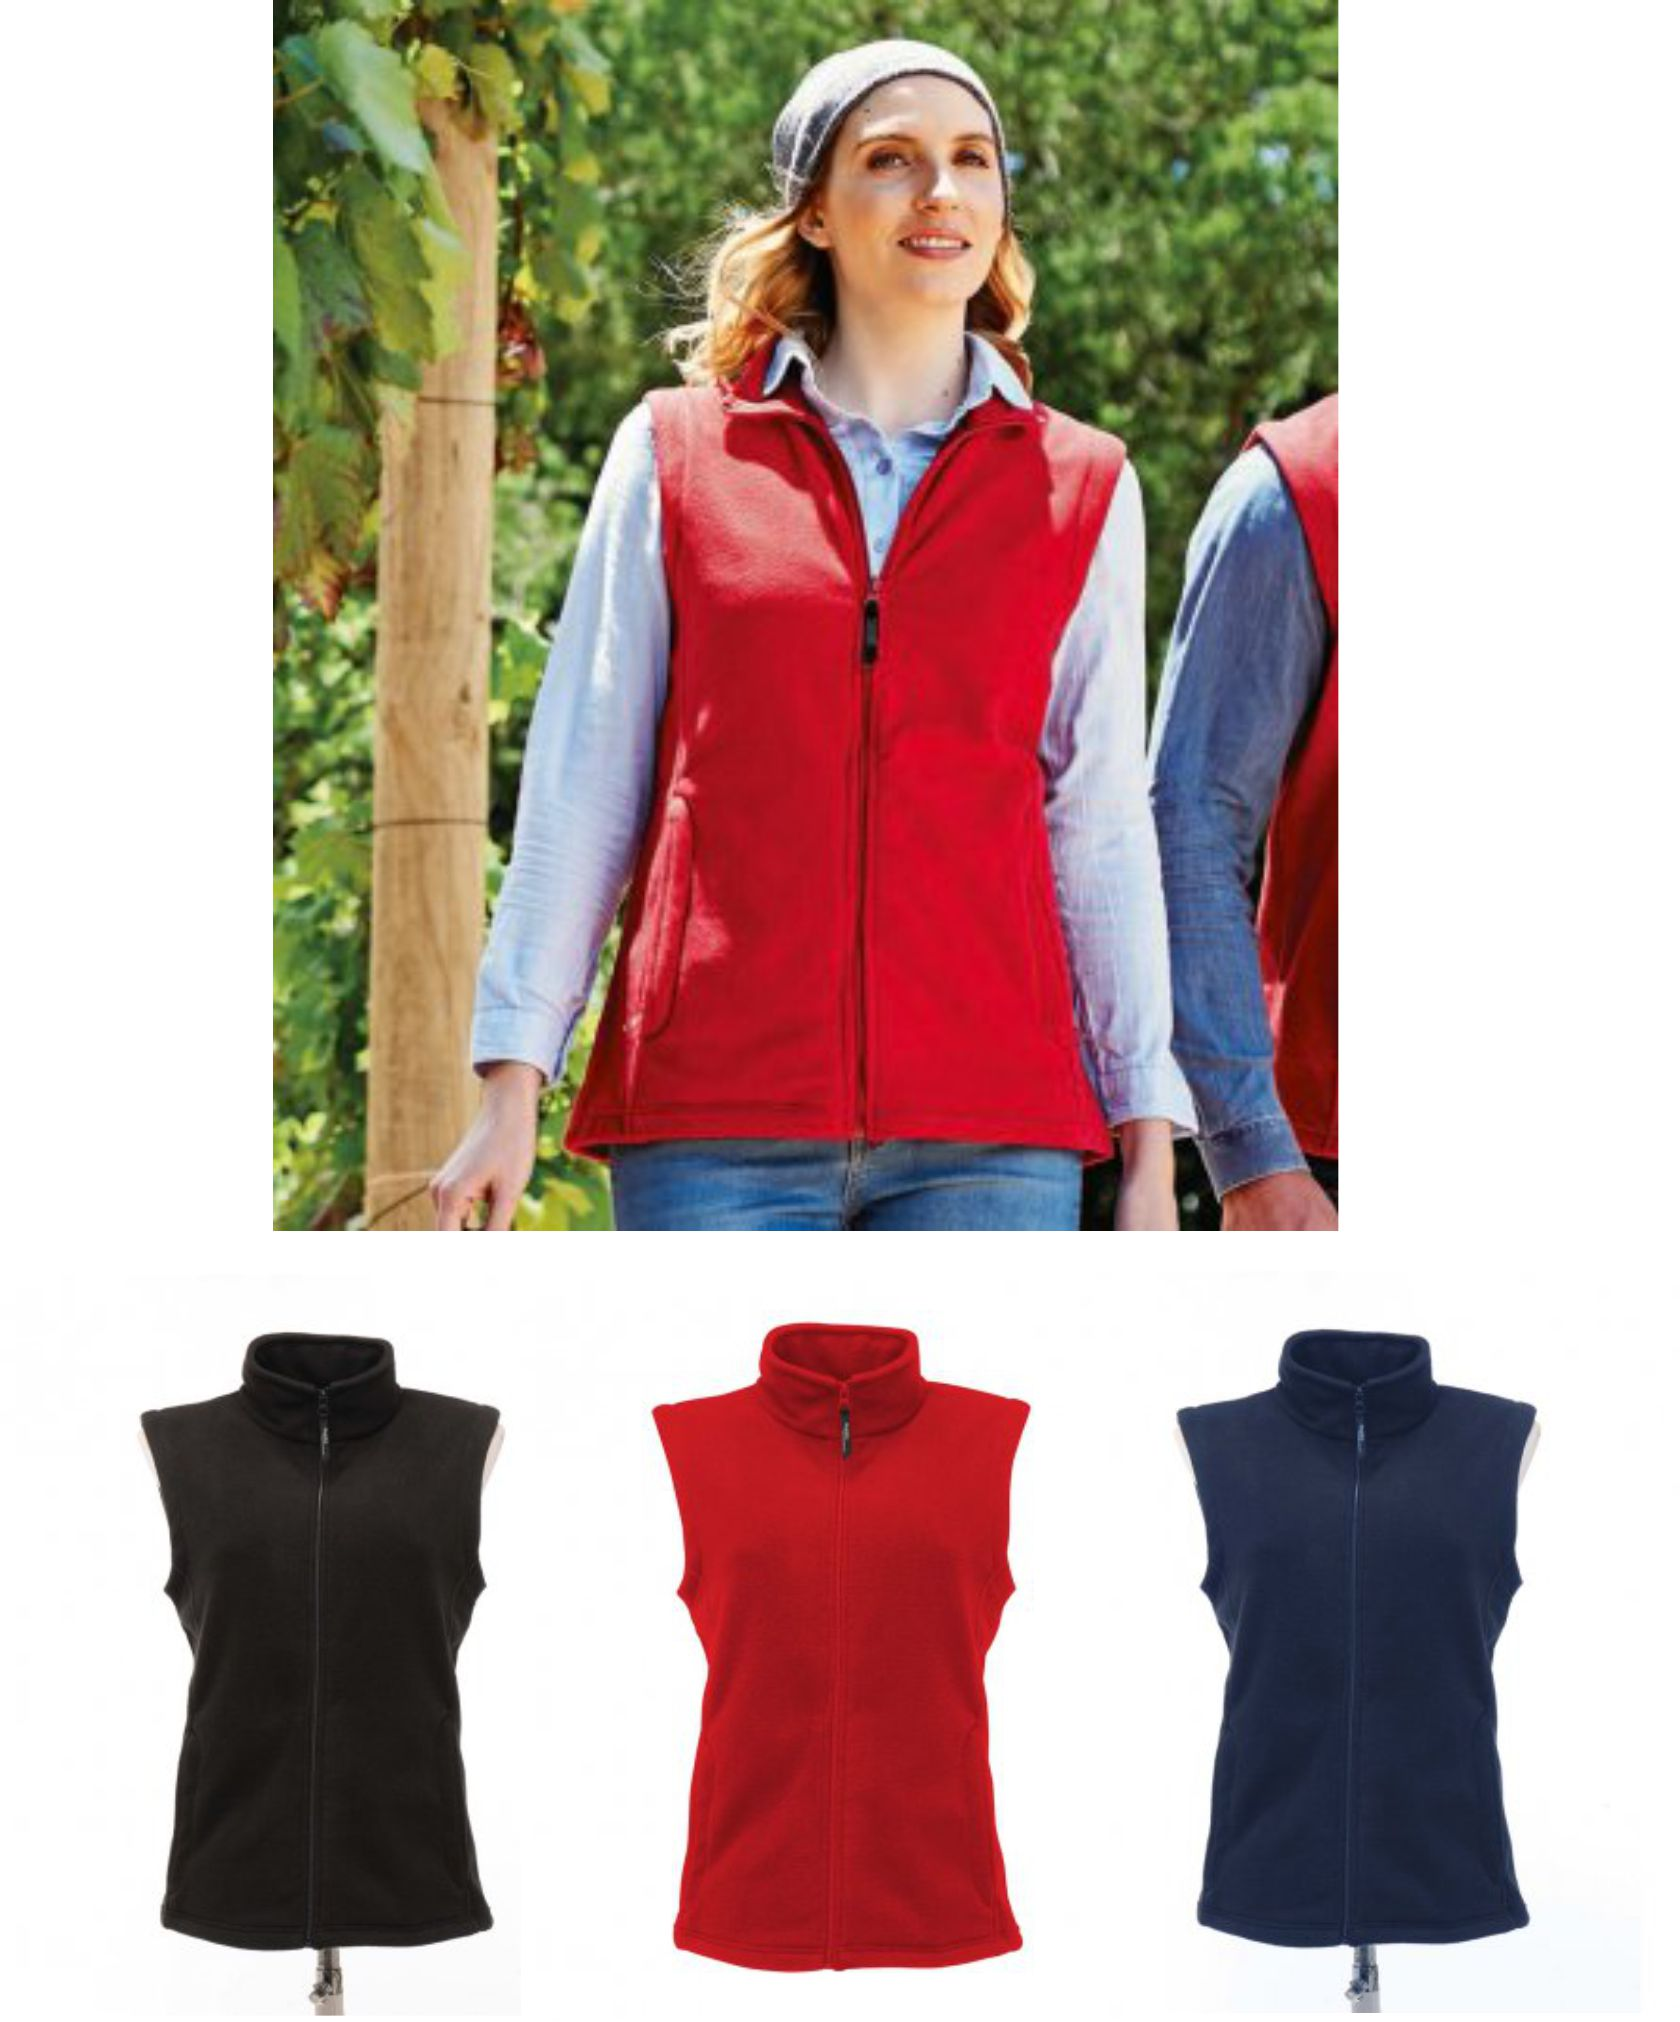 Regatta RG116 Ladies Microfleece Bodywarmer